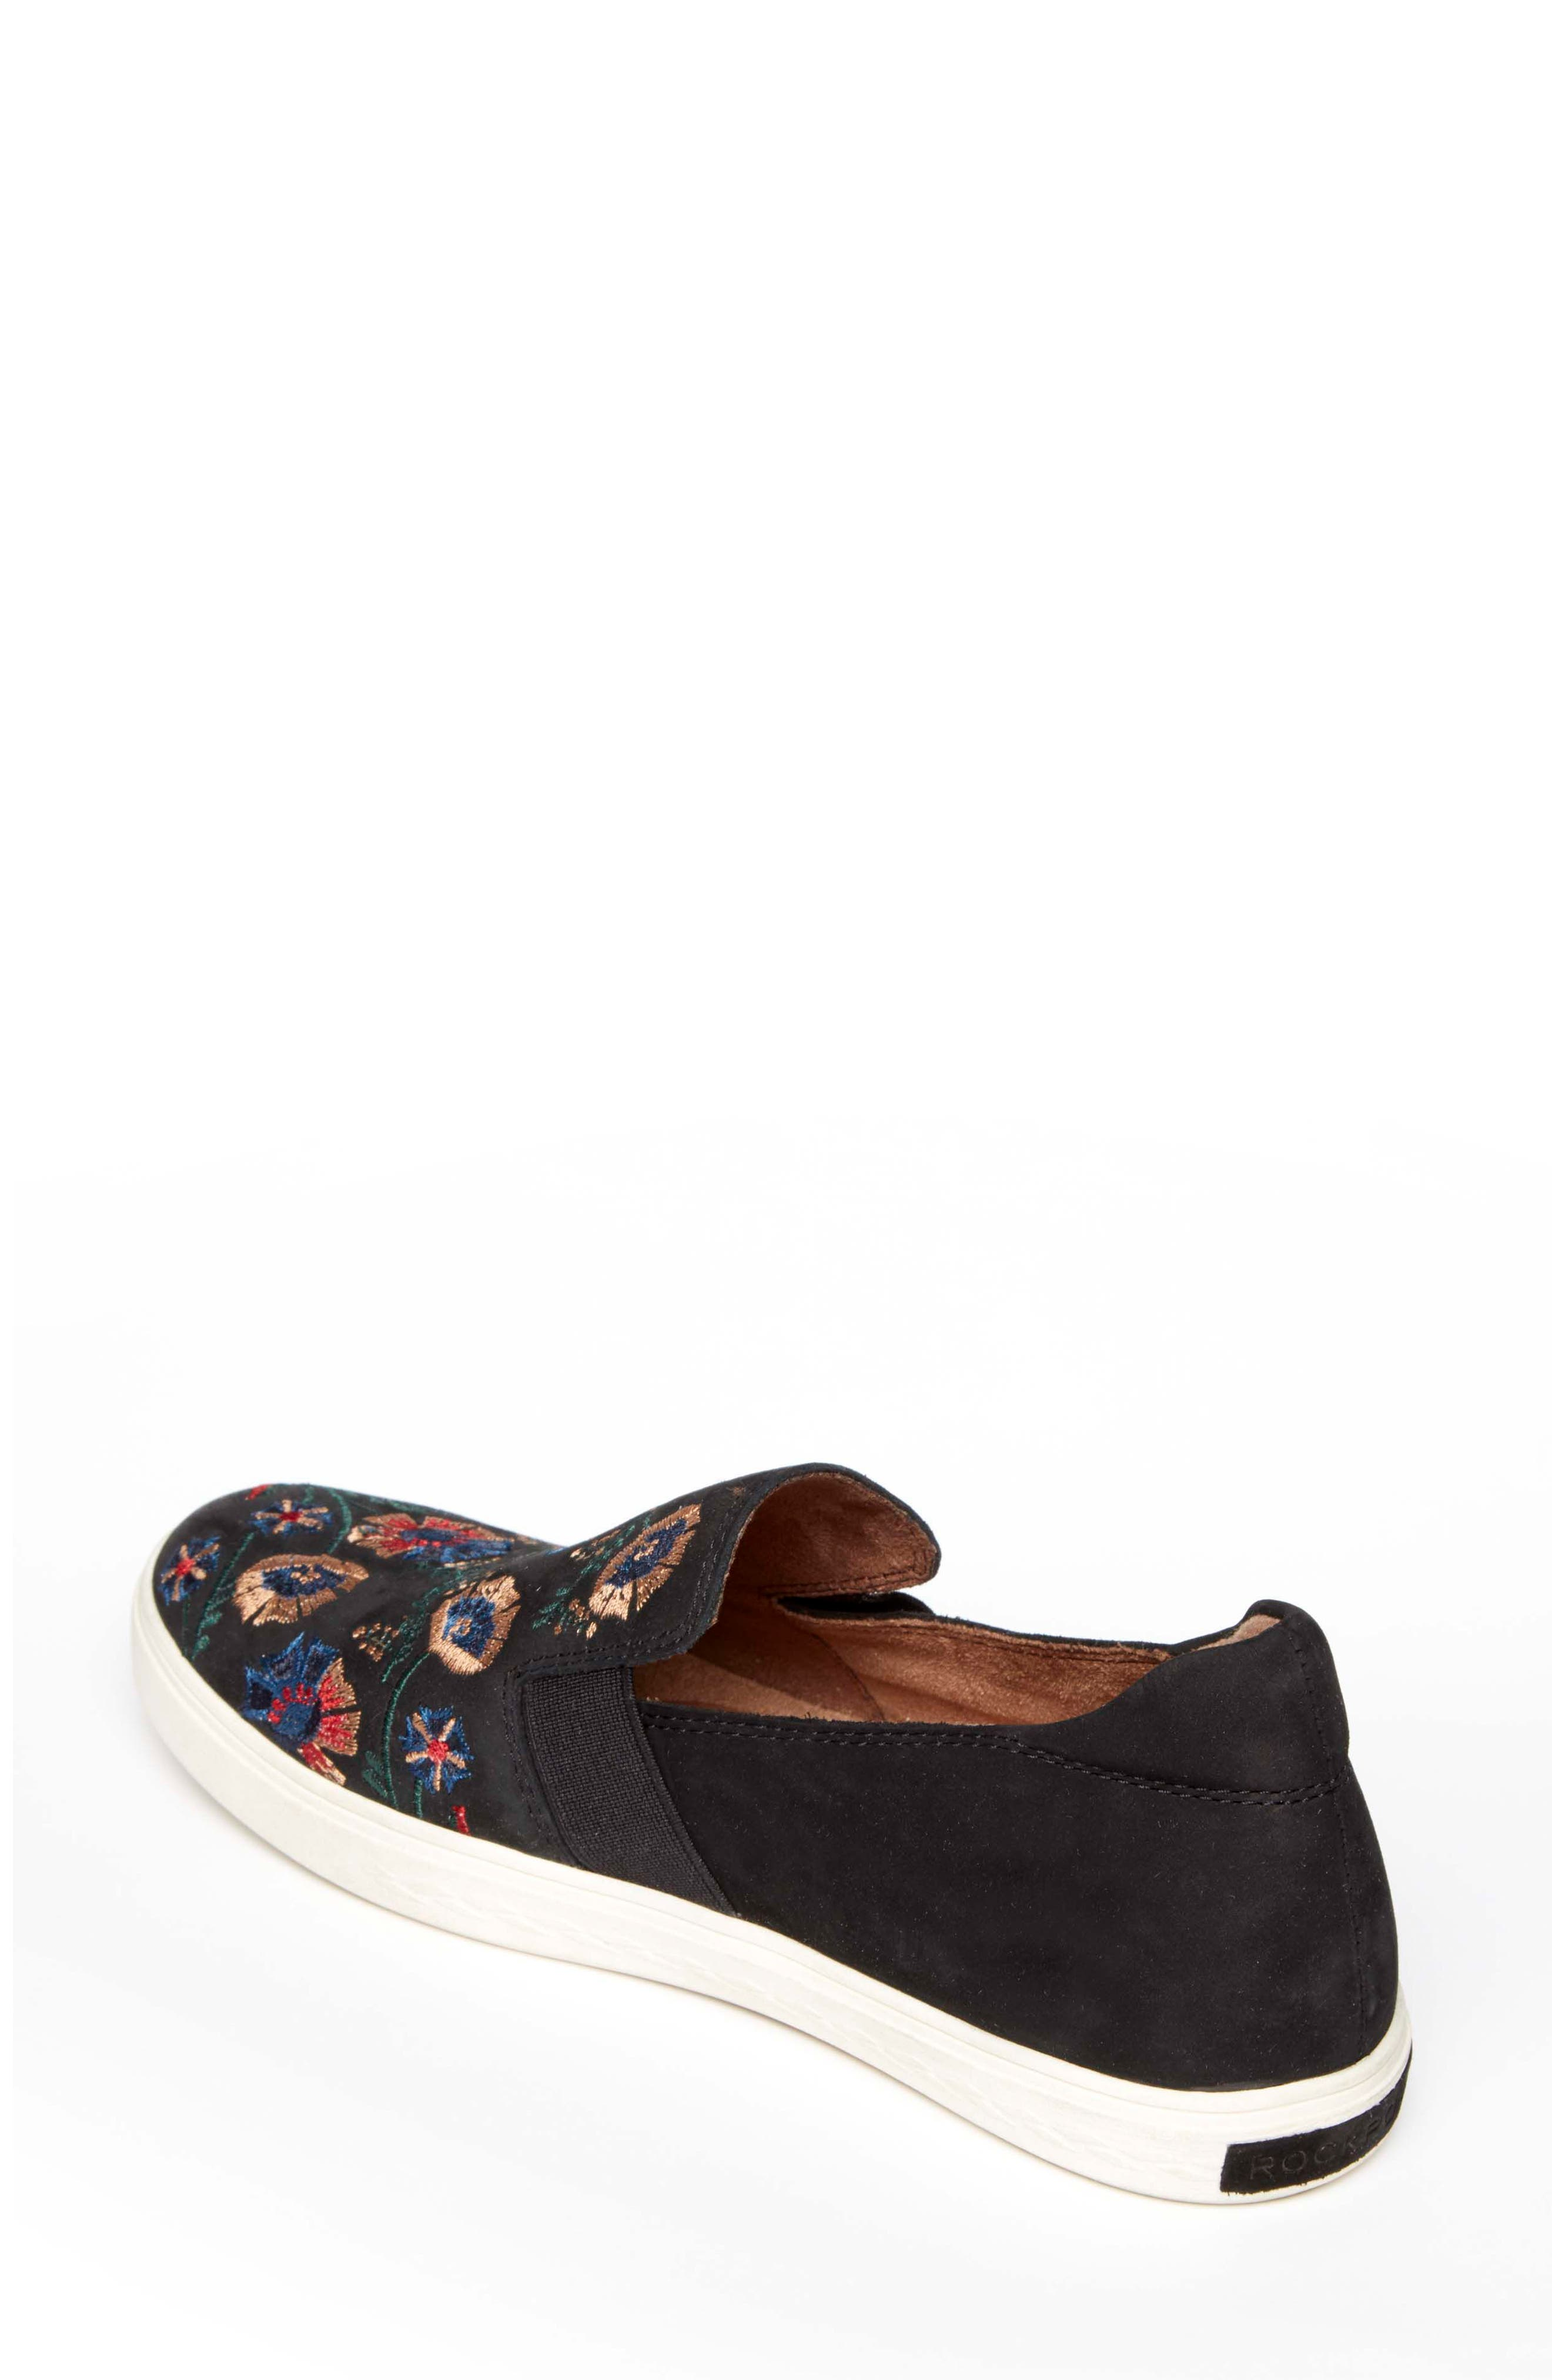 Cobb Hill Flower Embroidered Slip-On Sneaker,                             Alternate thumbnail 2, color,                             BLACK NUBUCK